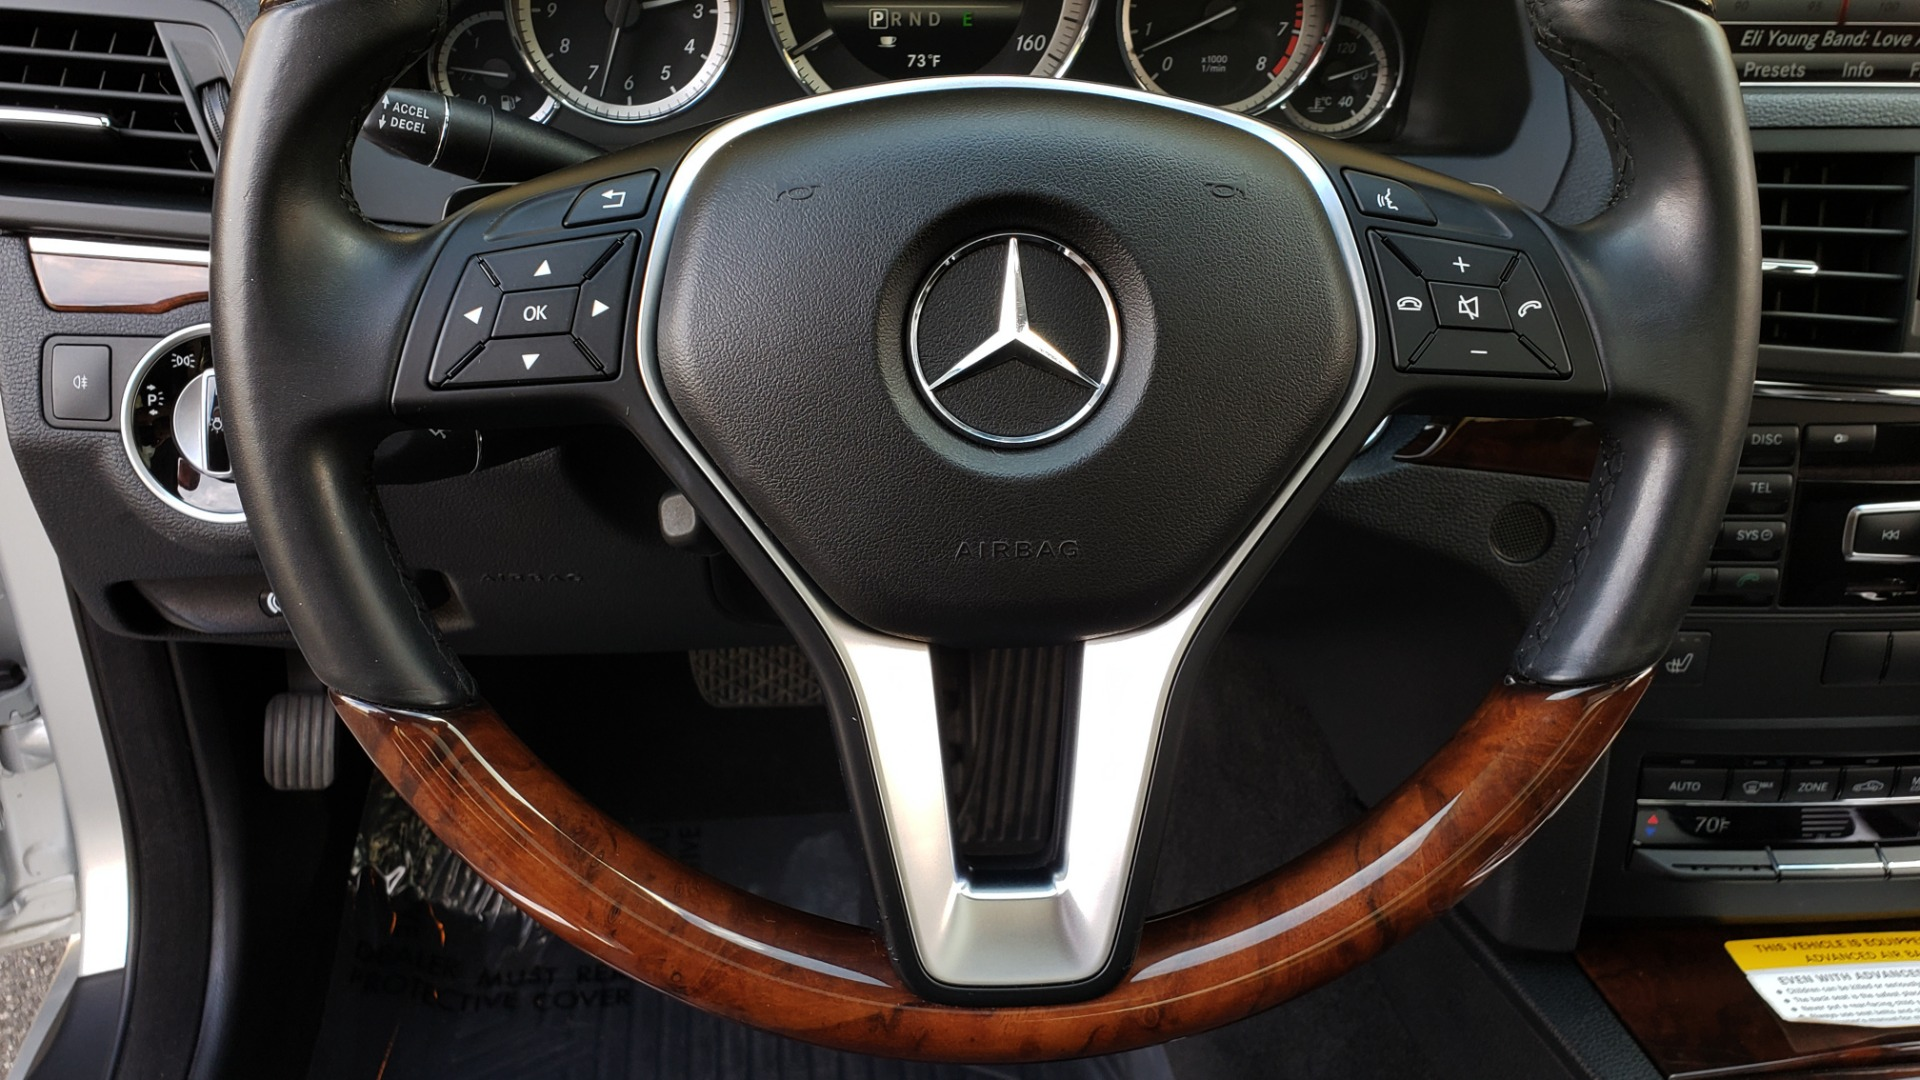 Used 2013 Mercedes-Benz E-CLASS E 350 COUPE PREM / NAV / PANO-ROFF / KEYLESS-GO / REARVIEW for sale Sold at Formula Imports in Charlotte NC 28227 40